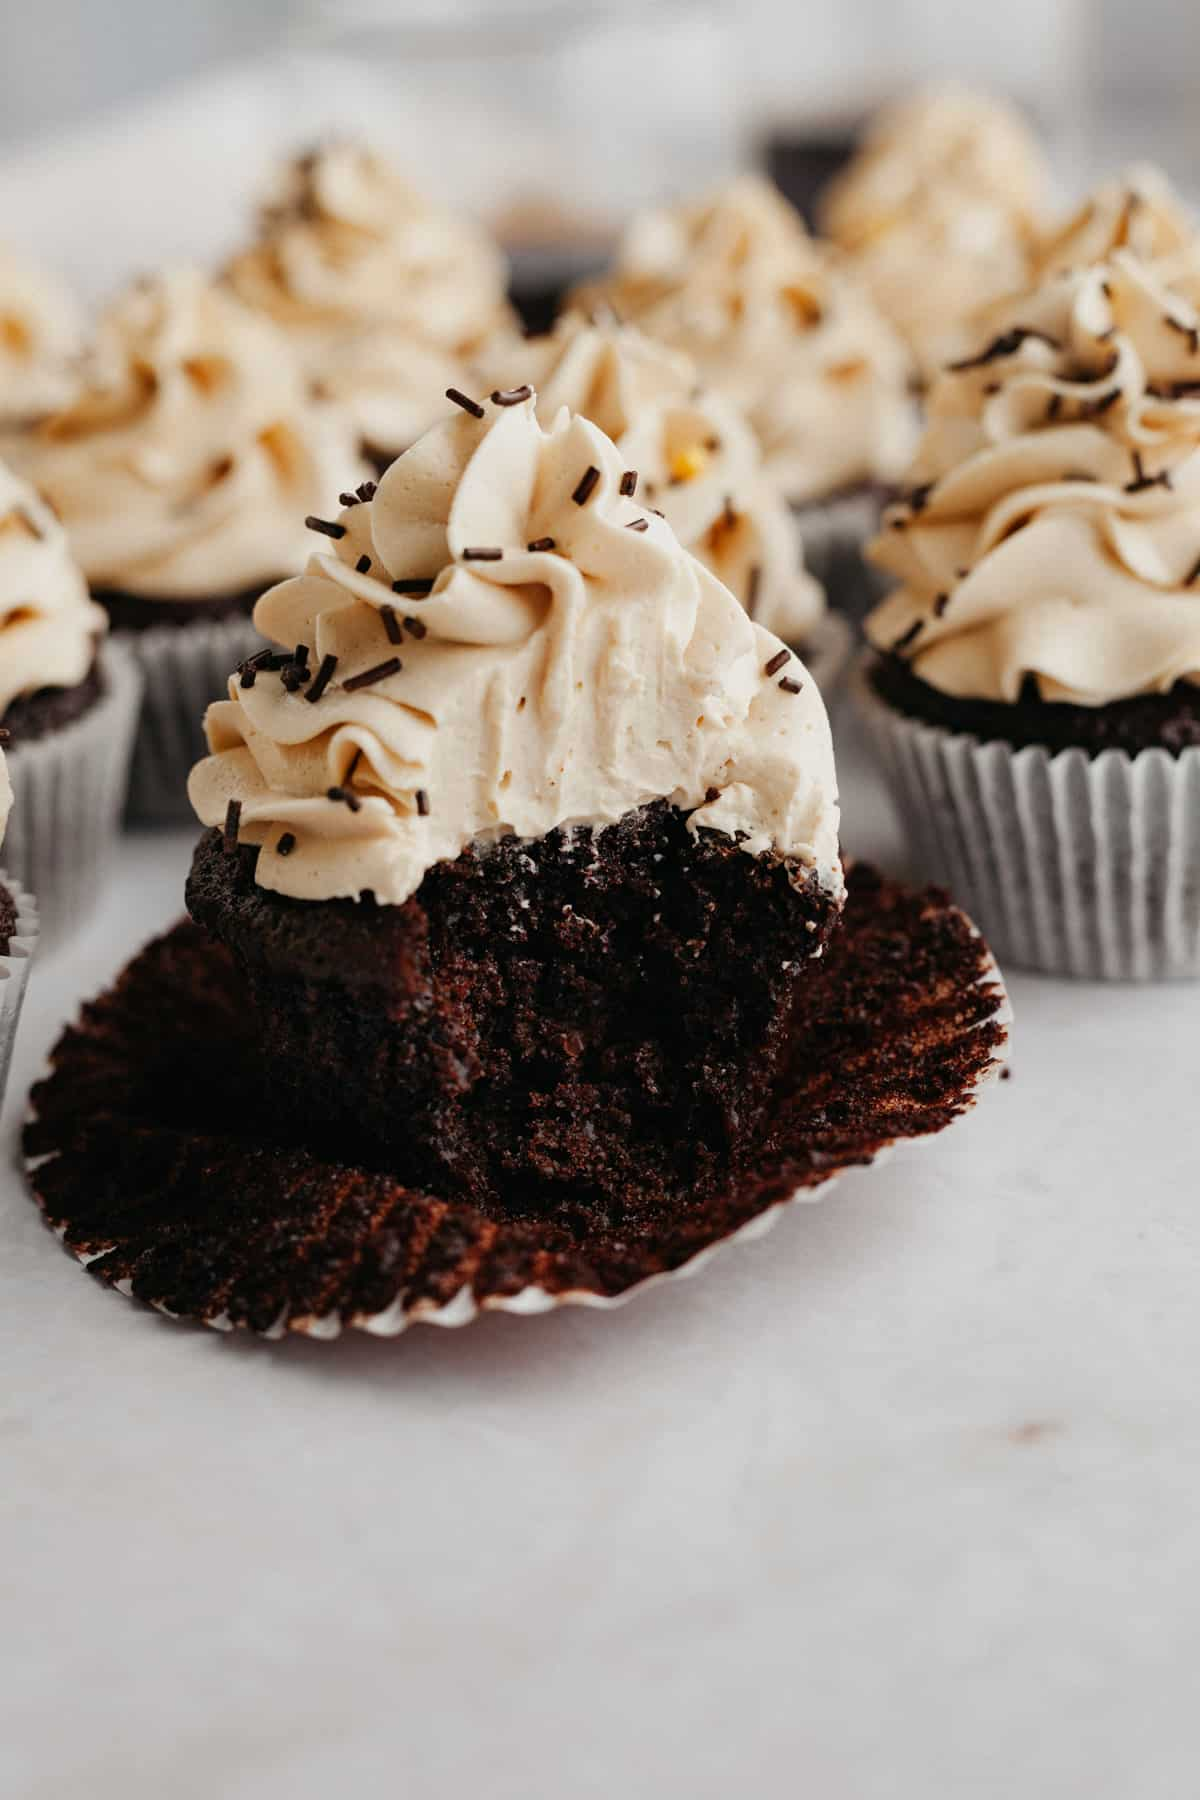 A mocha cupcake with a bite taken out of it